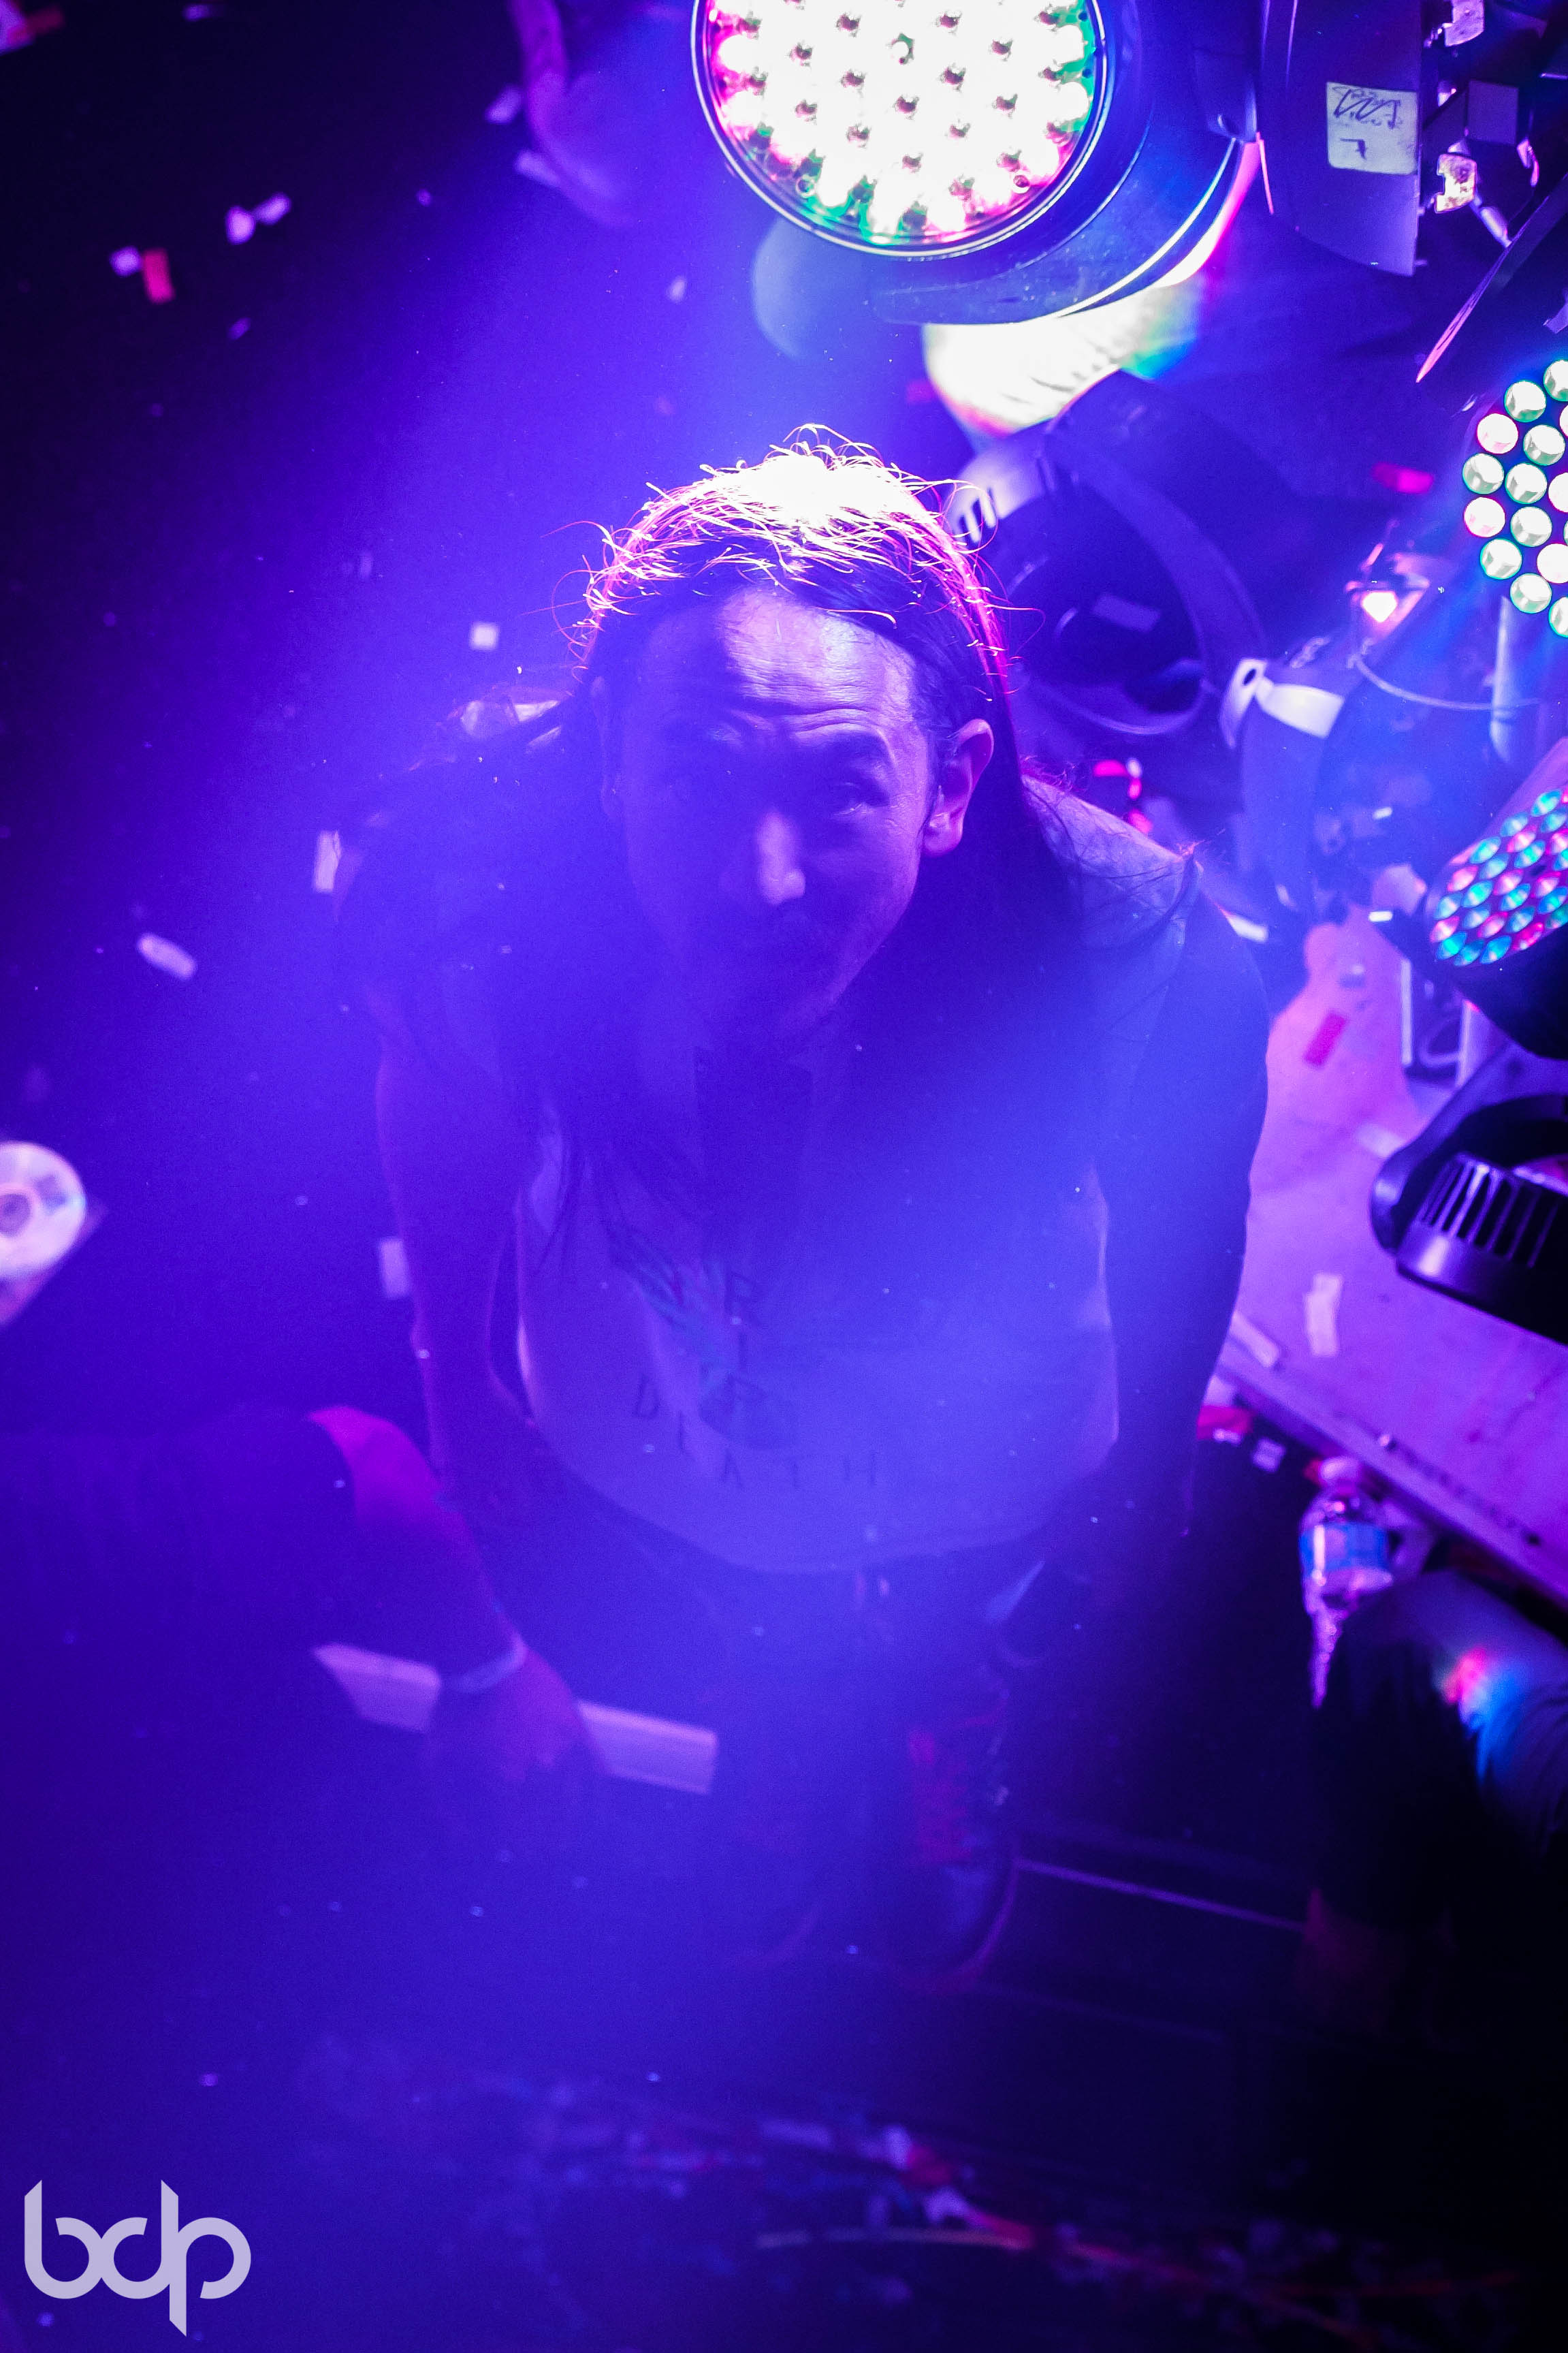 Aokify America Tour at Epic at Epic 110913 BDP-20.jpg